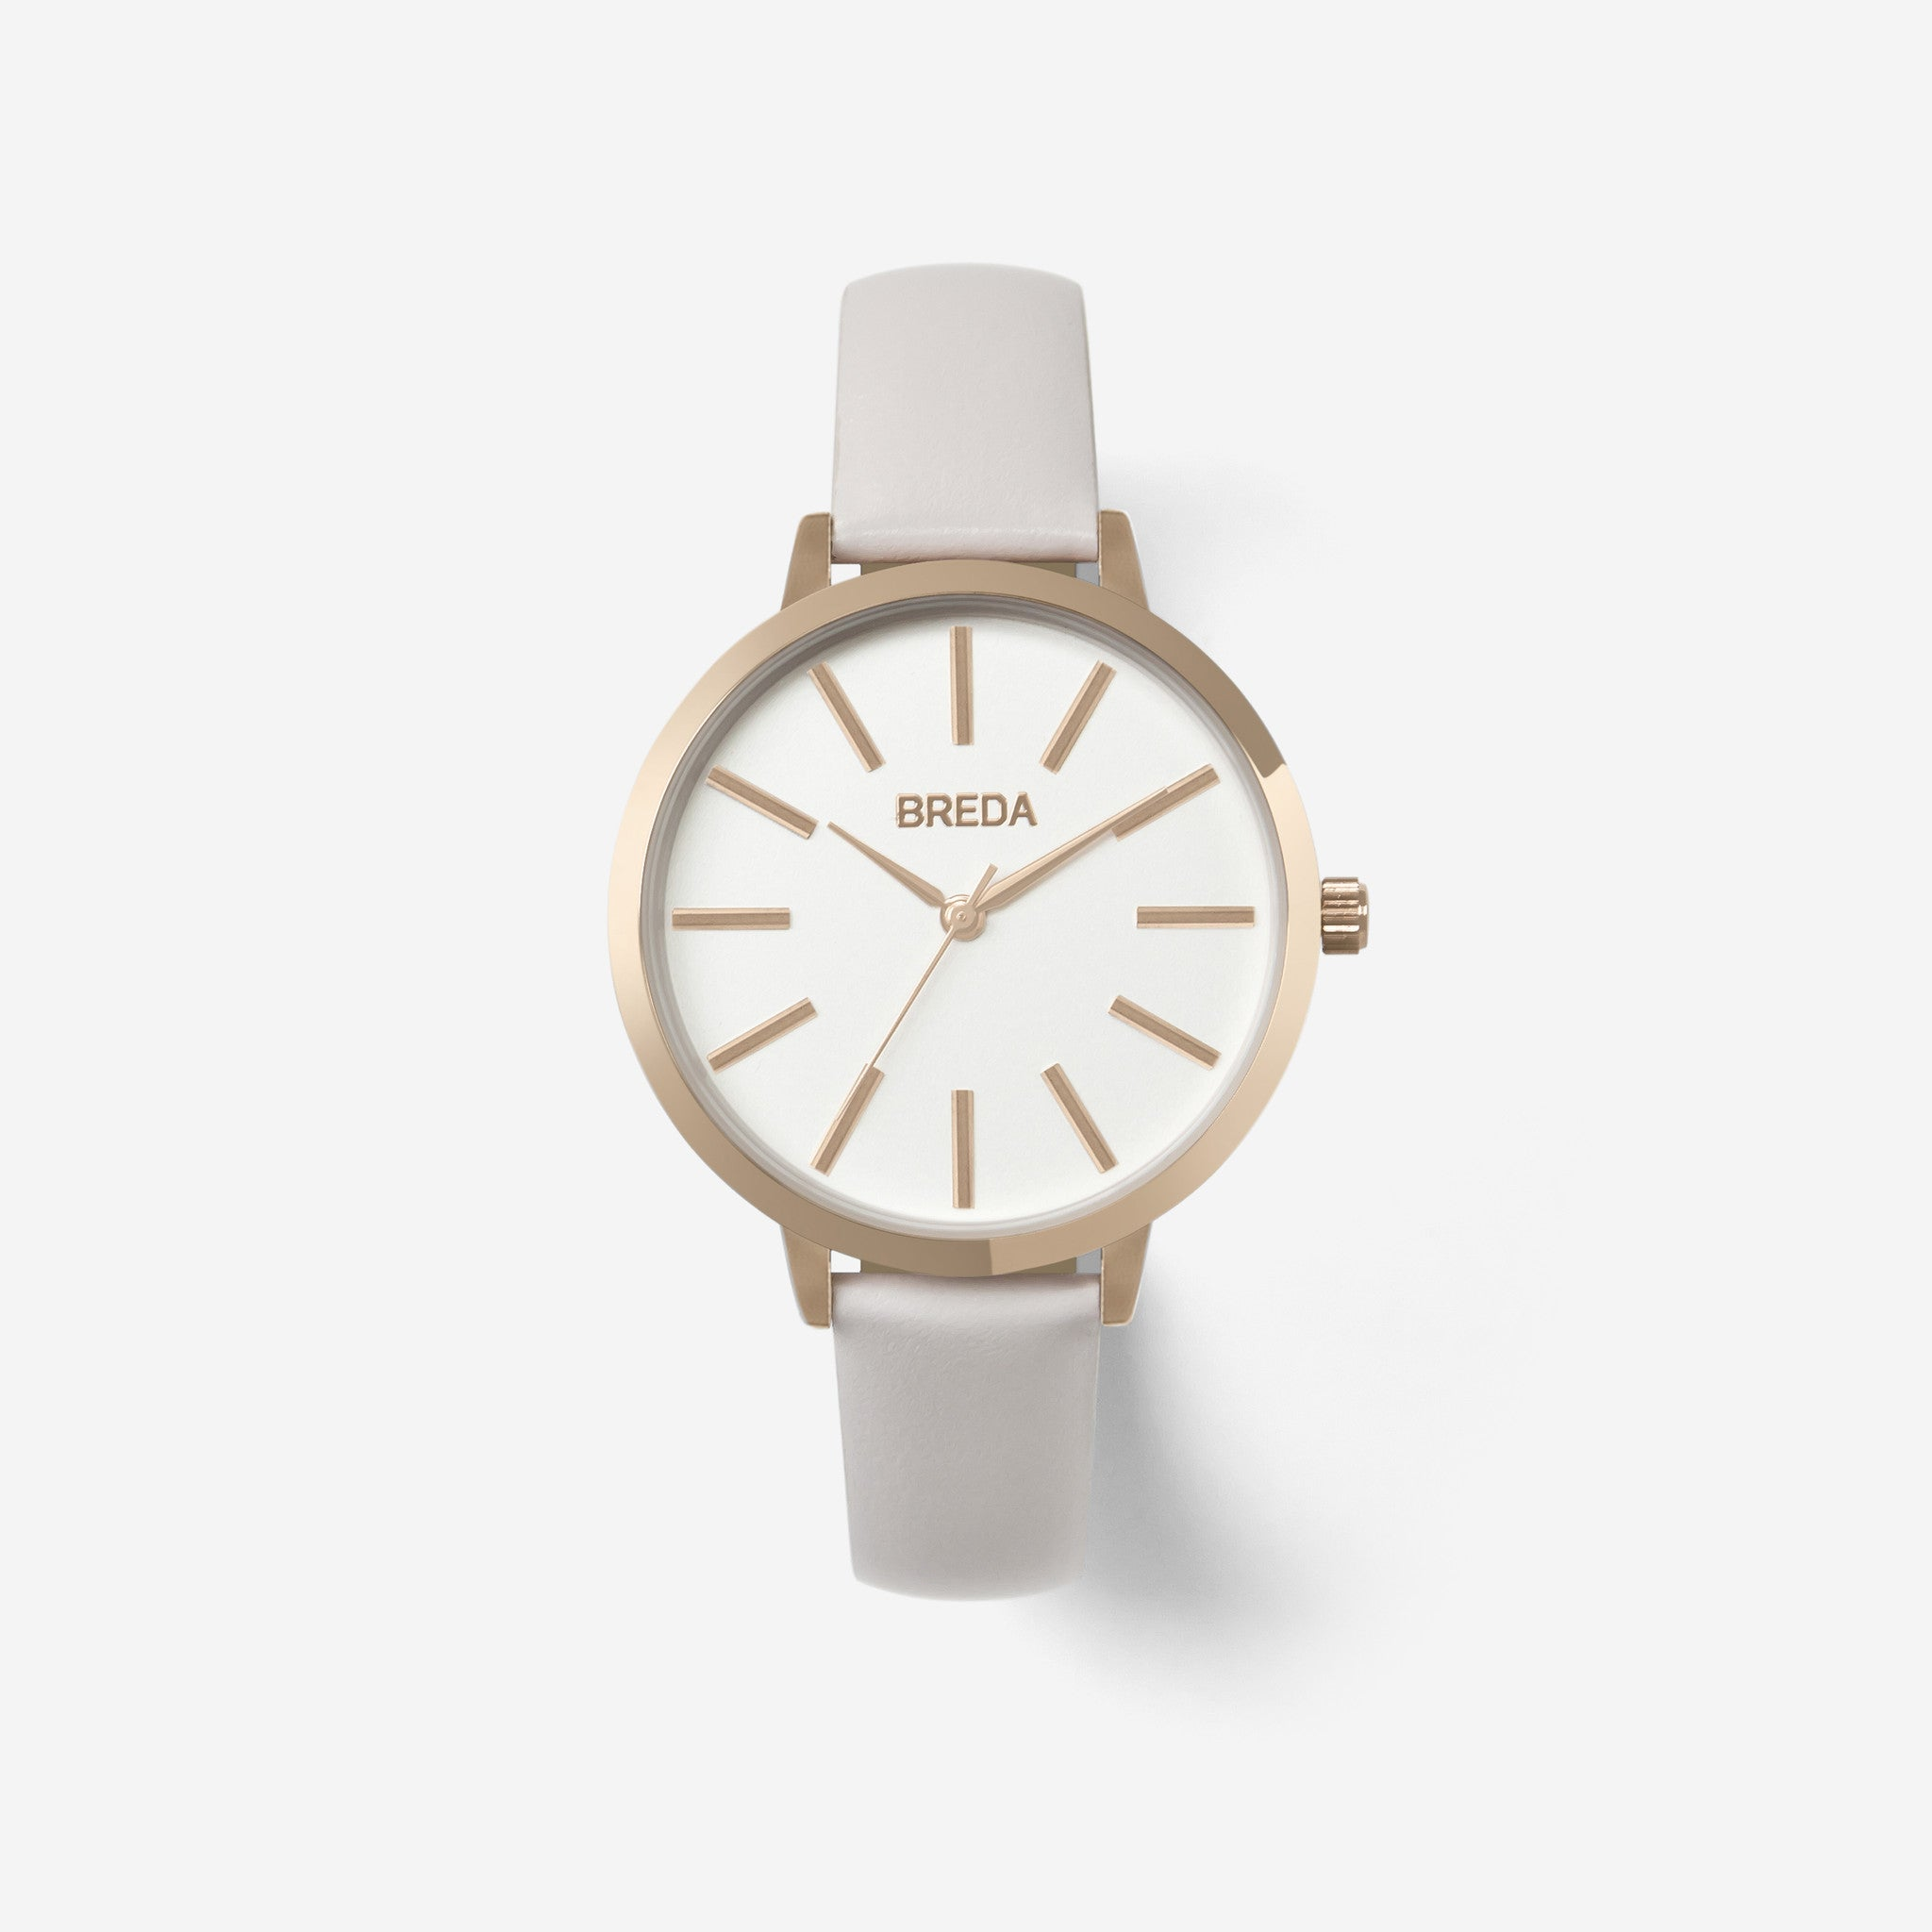 //cdn.shopify.com/s/files/1/0879/6650/products/breda-joule-1722f-rosegold-blush-watch-front_1024x1024.jpg?v=1490812861